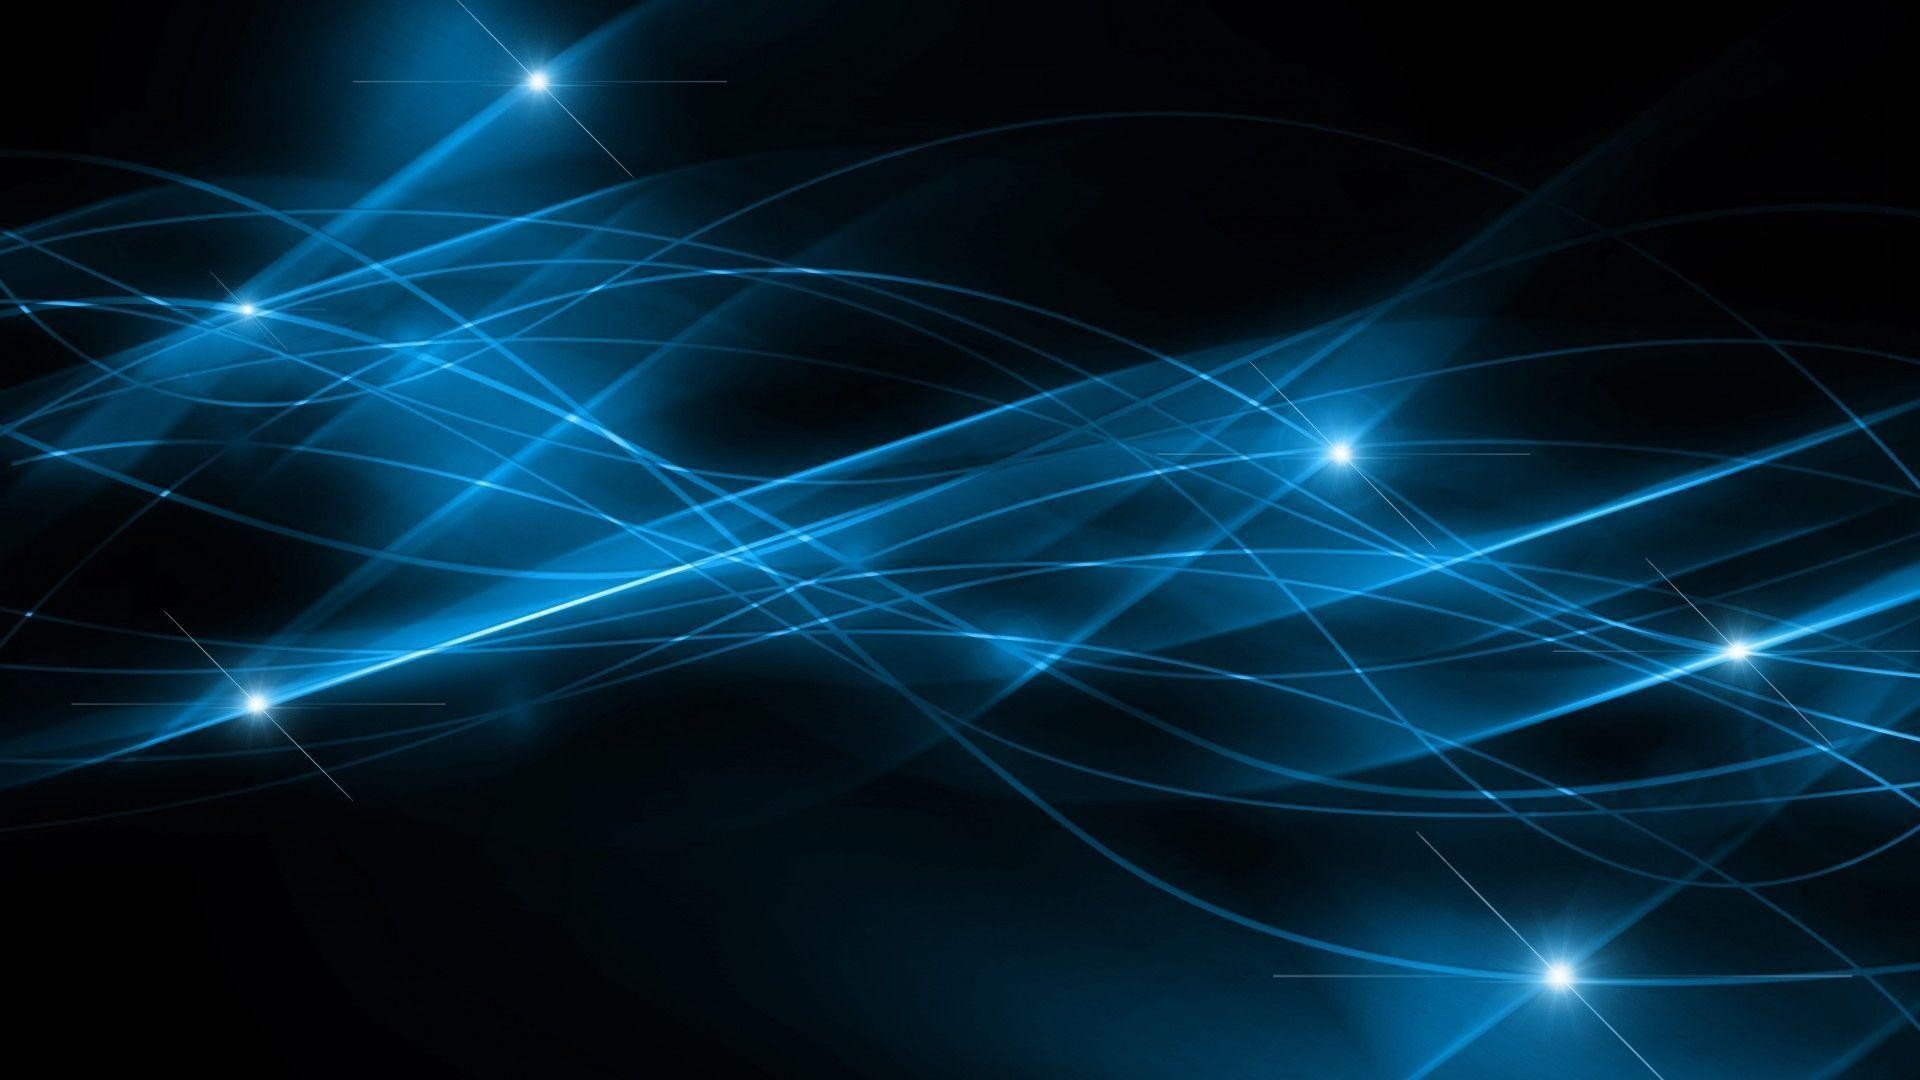 Black And Blue Abstract Backgrounds Hd Background 9 HD Wallpapers .